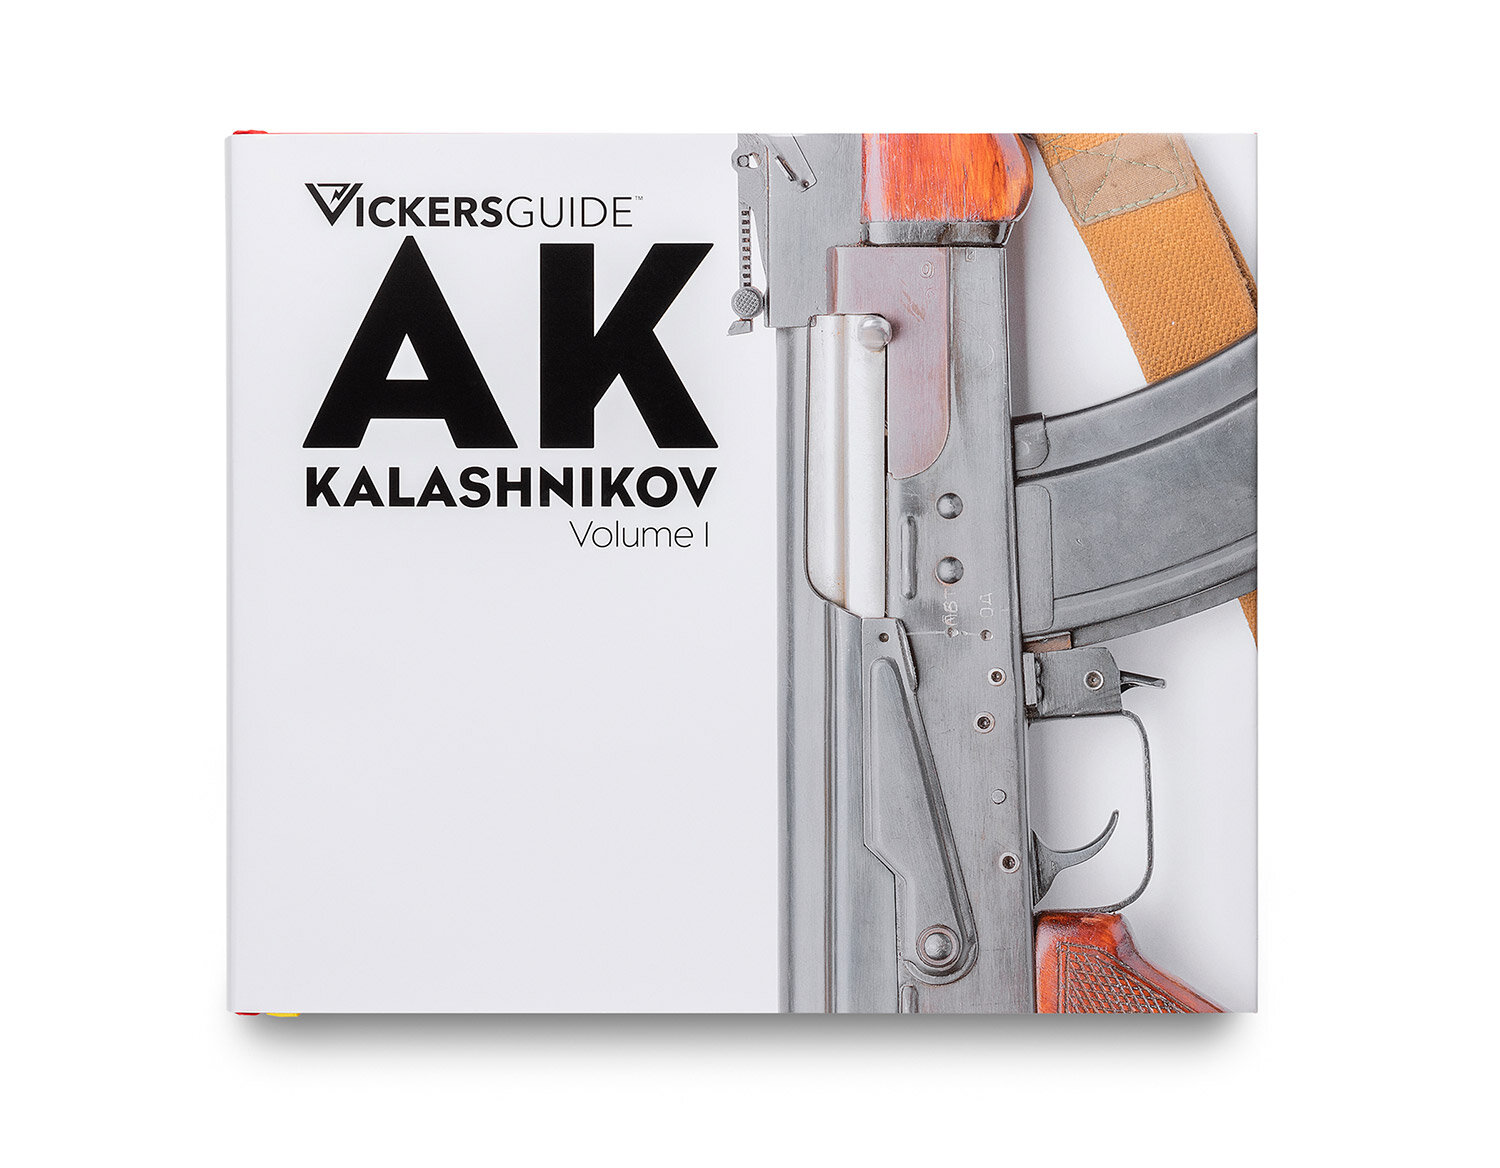 VOLUME 1 : 7.62x39mm variations of the Kalashnikov platform: AK-47; AK; AKM; RPK; AK-15; and many more examples from Russia/Soviet Union, Albania, Bulgaria, China, DDR (East Germany), Egypt, Hungary, Iraq, North Korea, Pakistan, Poland, Romania, Vietnam, and Yugoslavia.